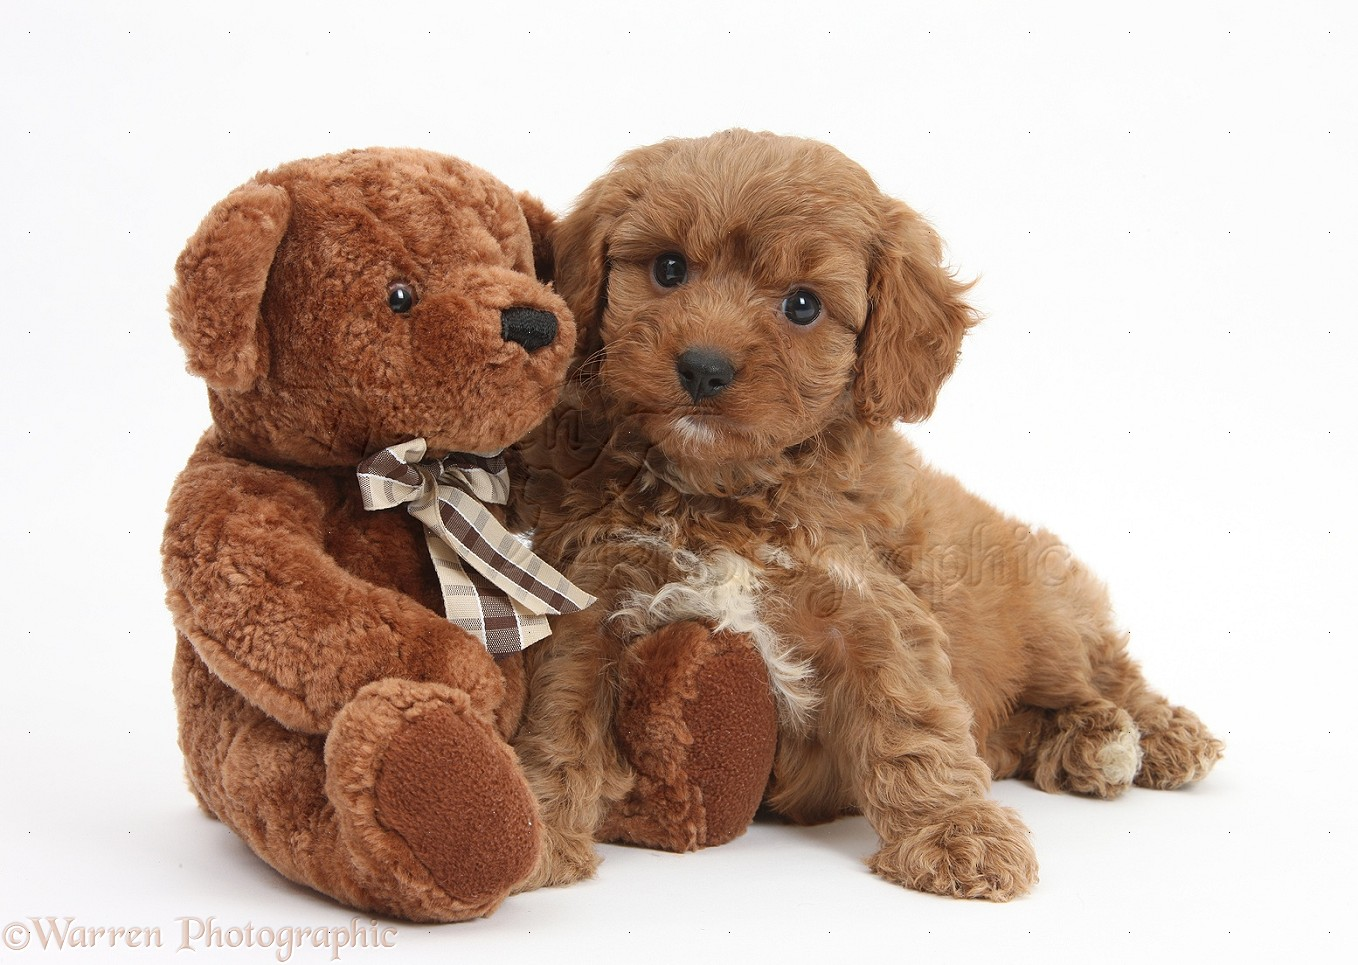 brown teddy bear puppies - 657×467